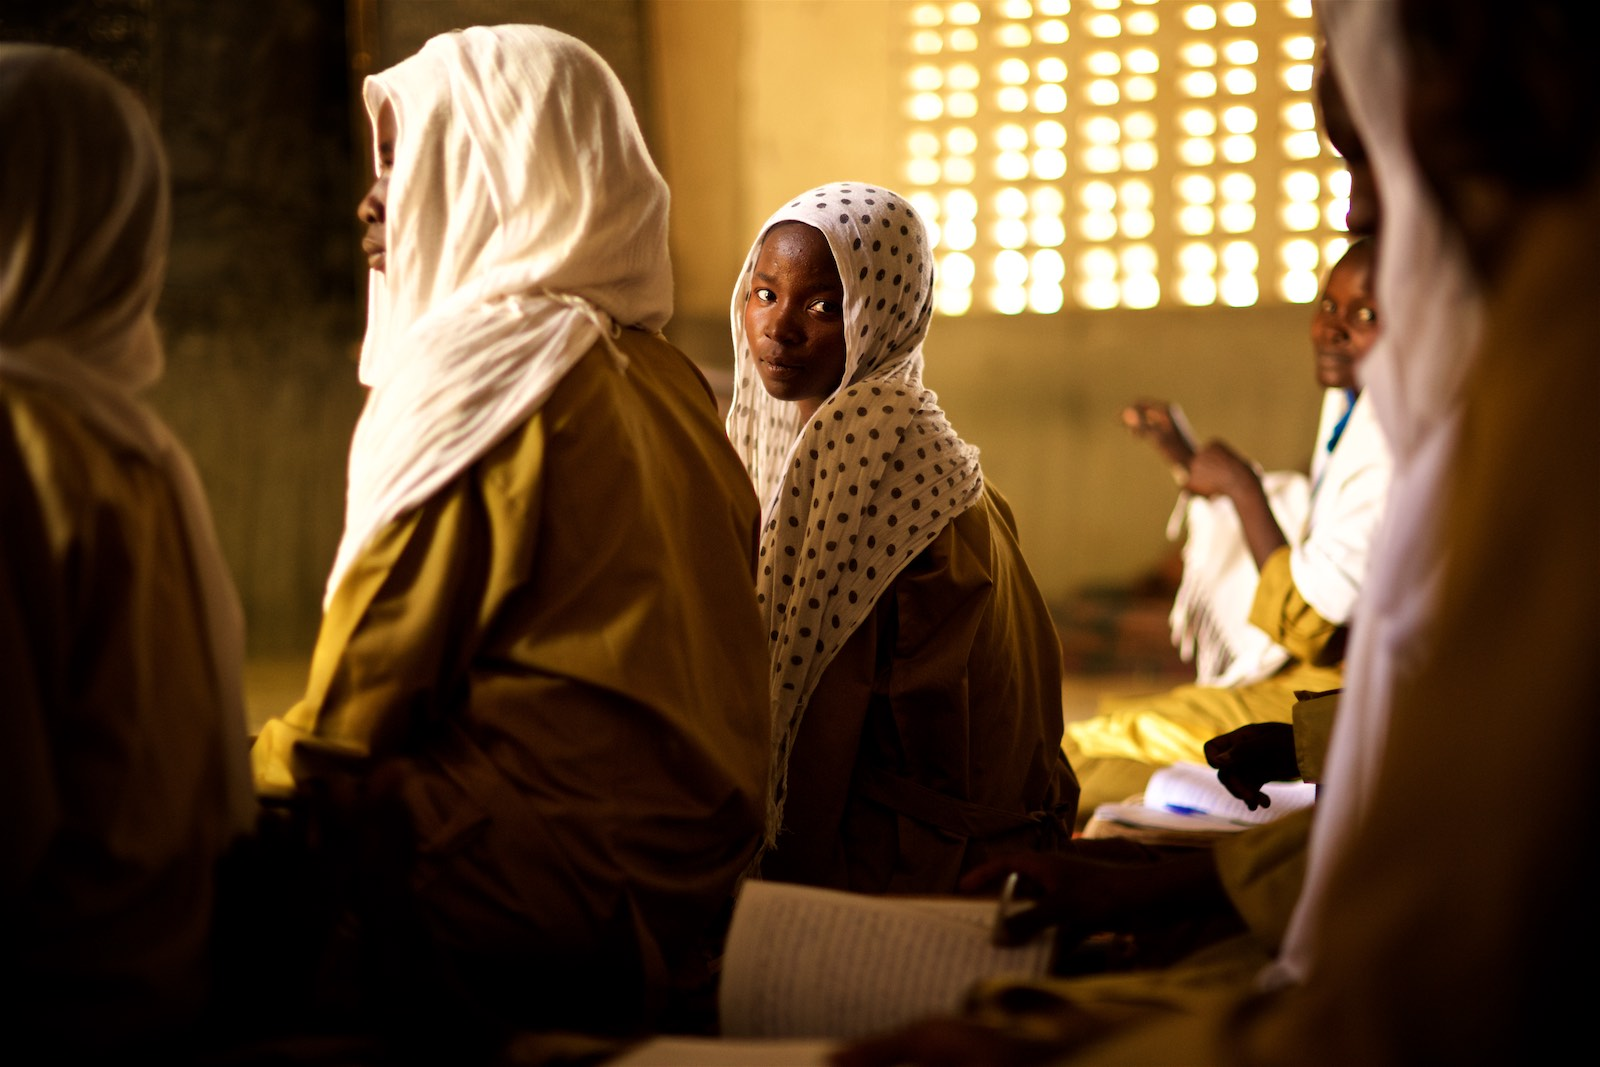 denis-bosnic-chad-school-jrs-jesuit-refugee-service-students-education-mercy-in-motion-19.jpg